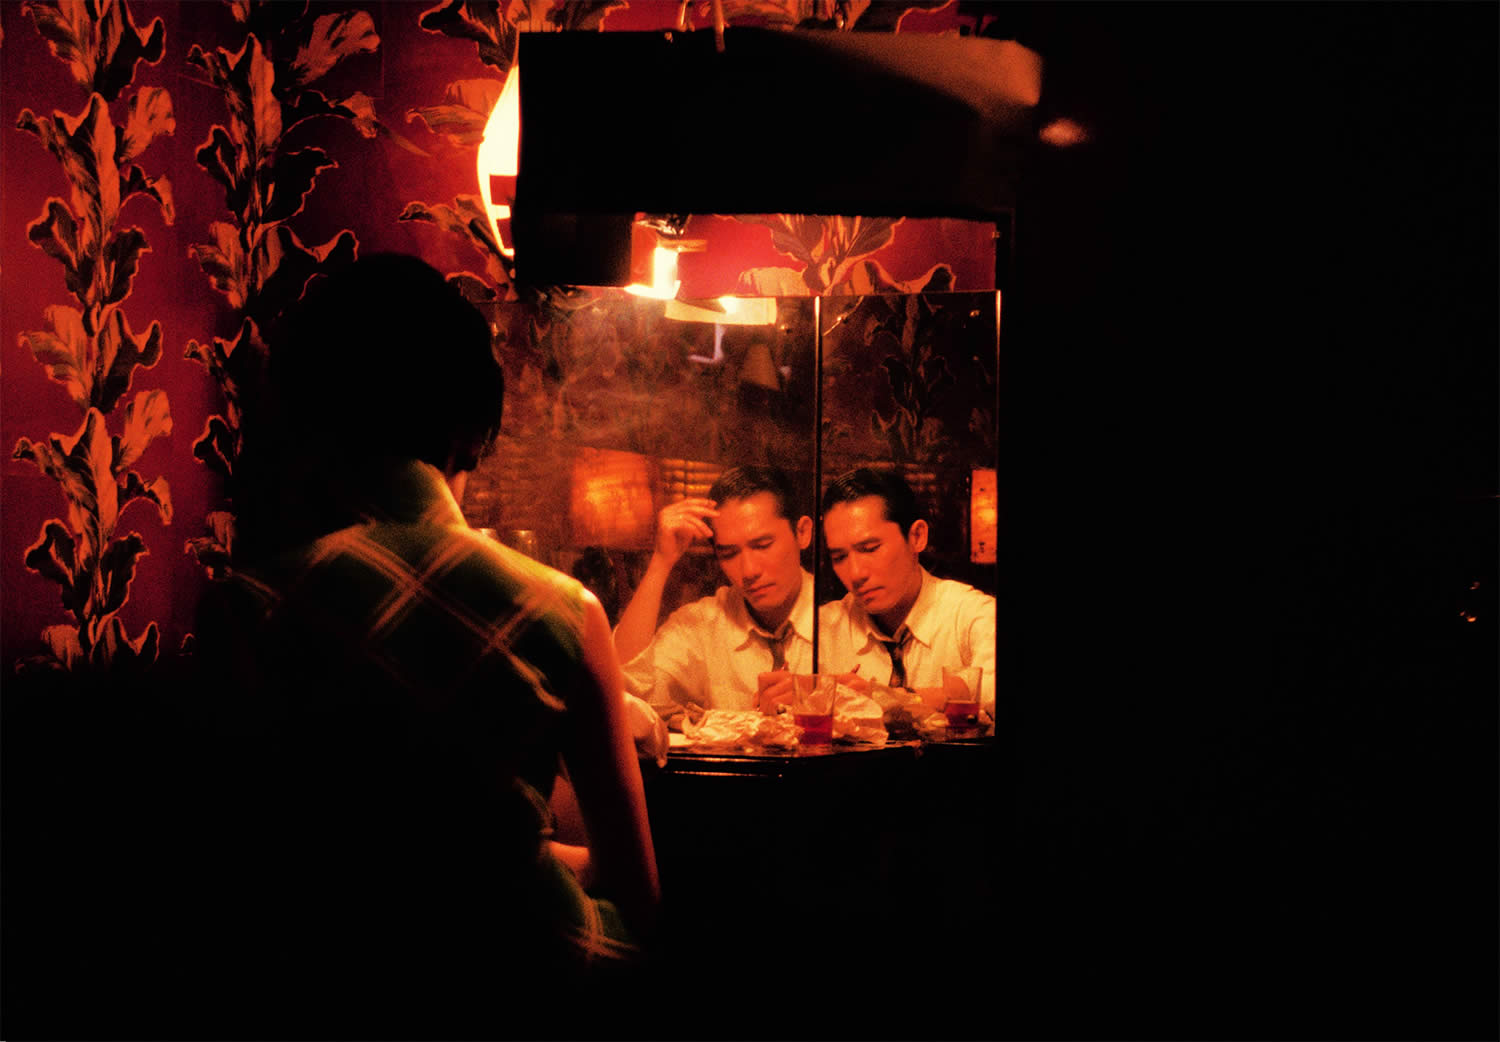 red room, in the mood for love